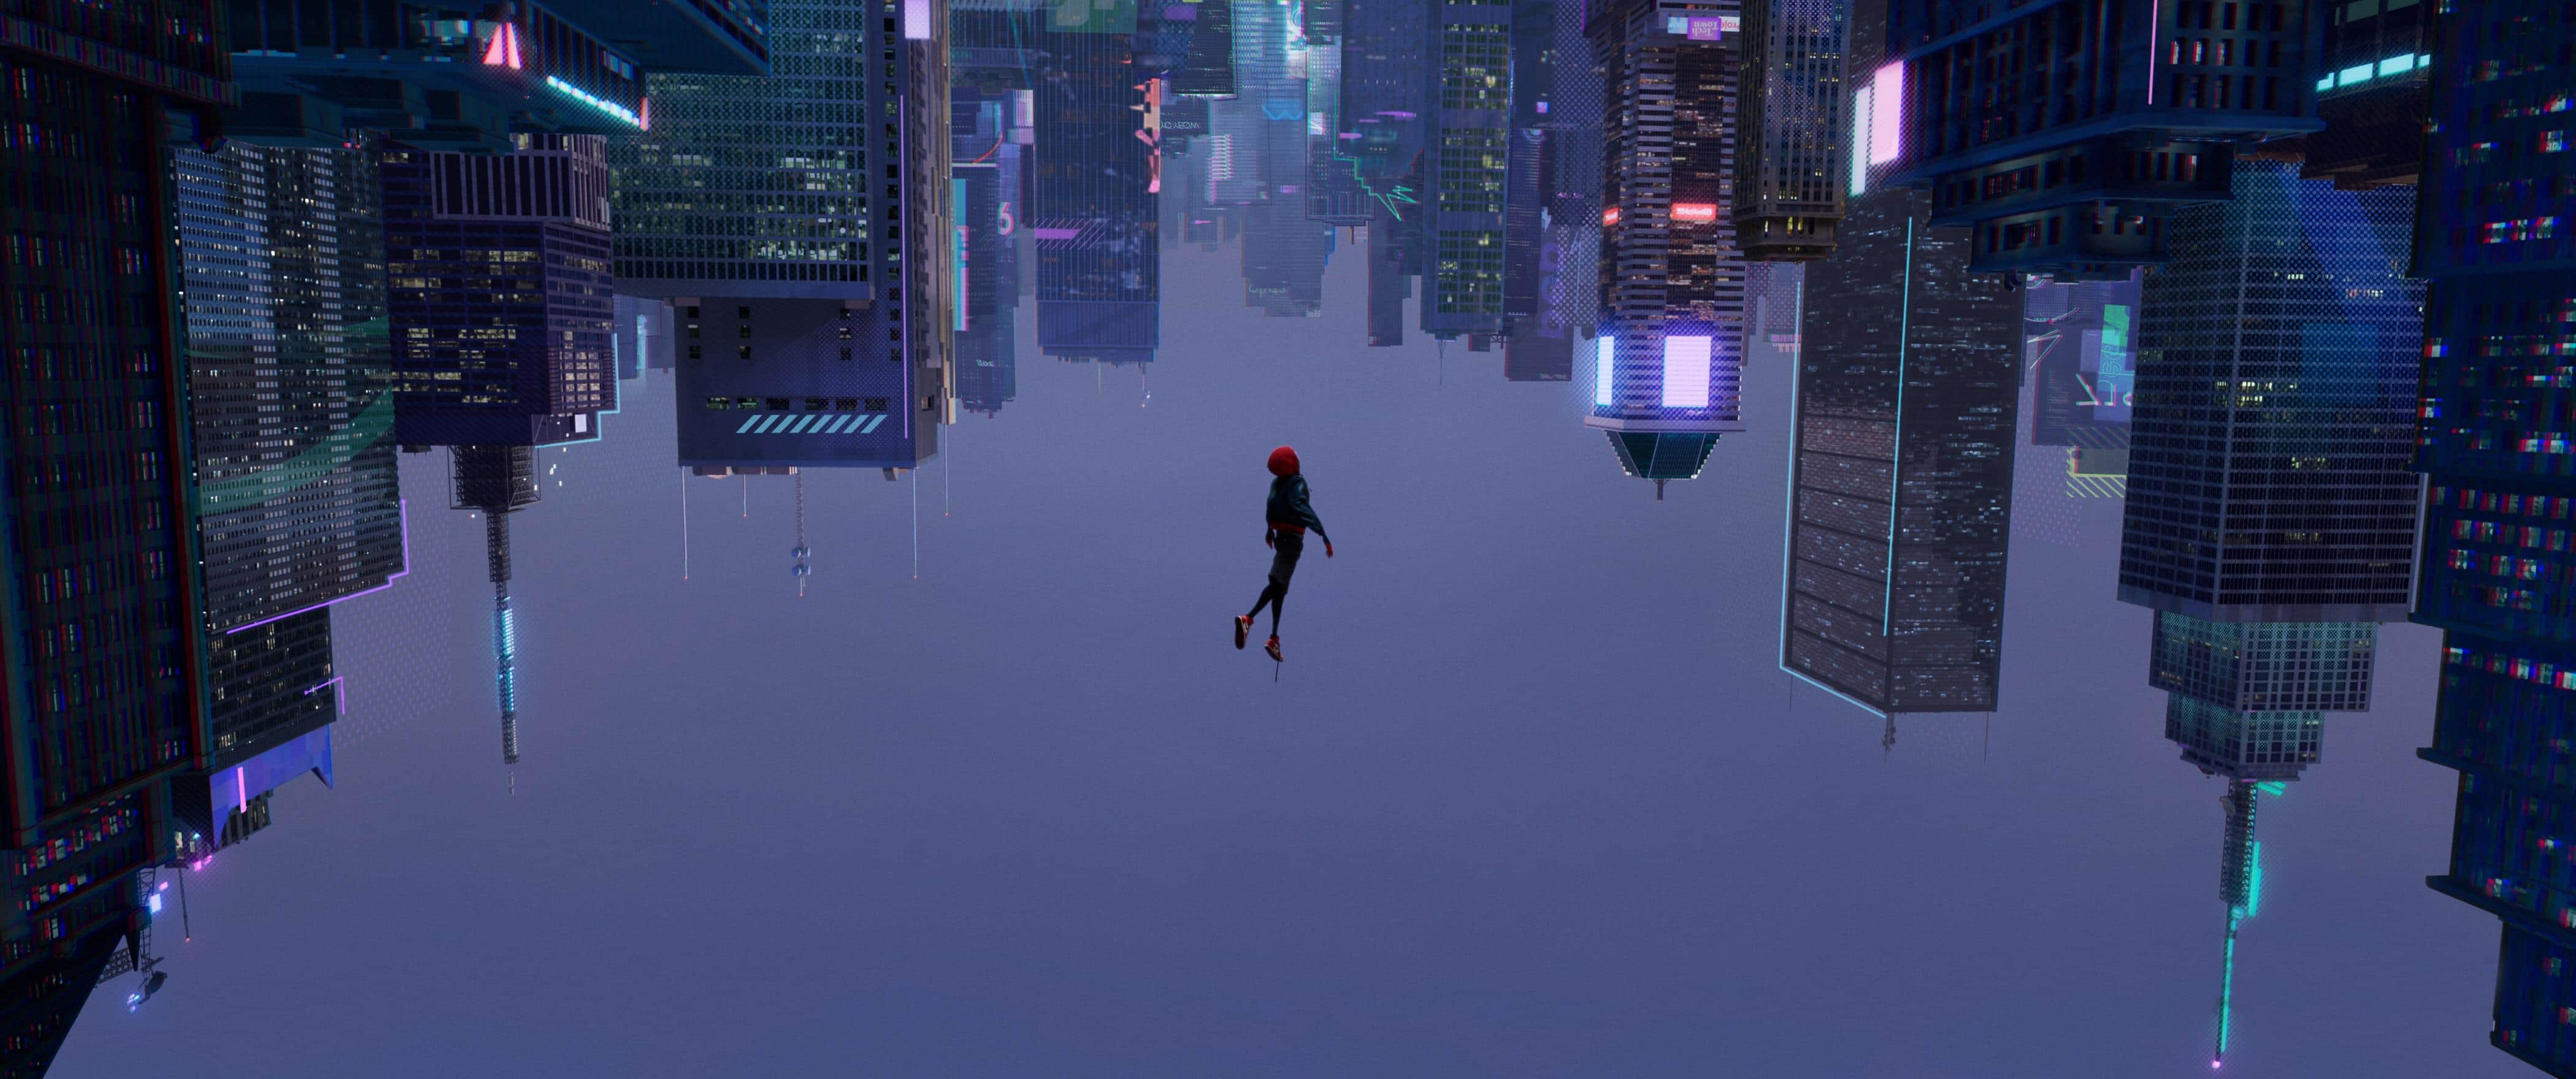 Miles Morales taking a leap of faith.